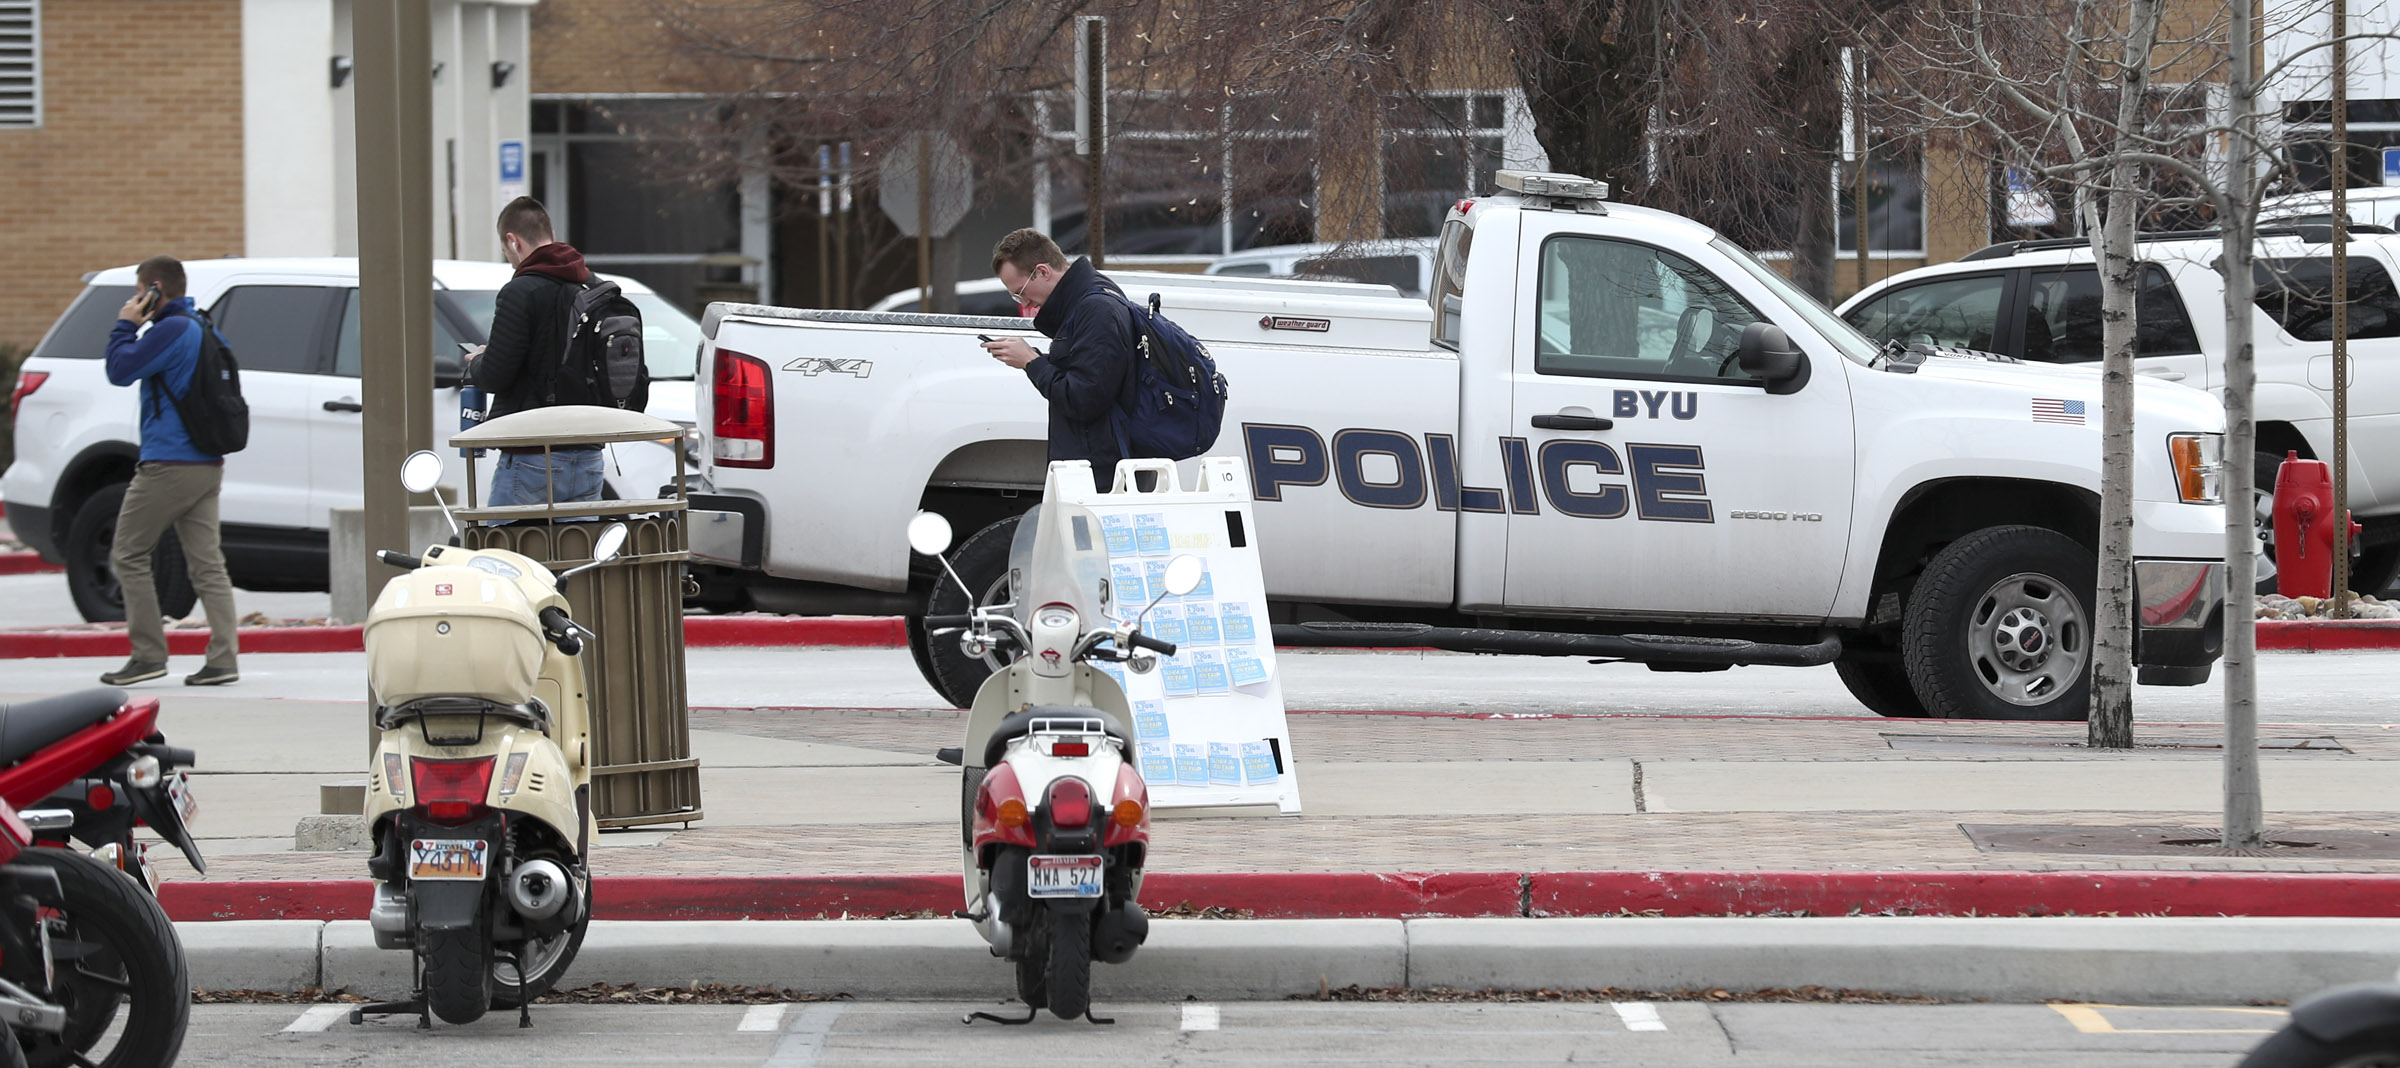 BYU police vehicles are parked outside the department's offices on the BYU campus in Provo on Thursday, Feb. 21, 2019.